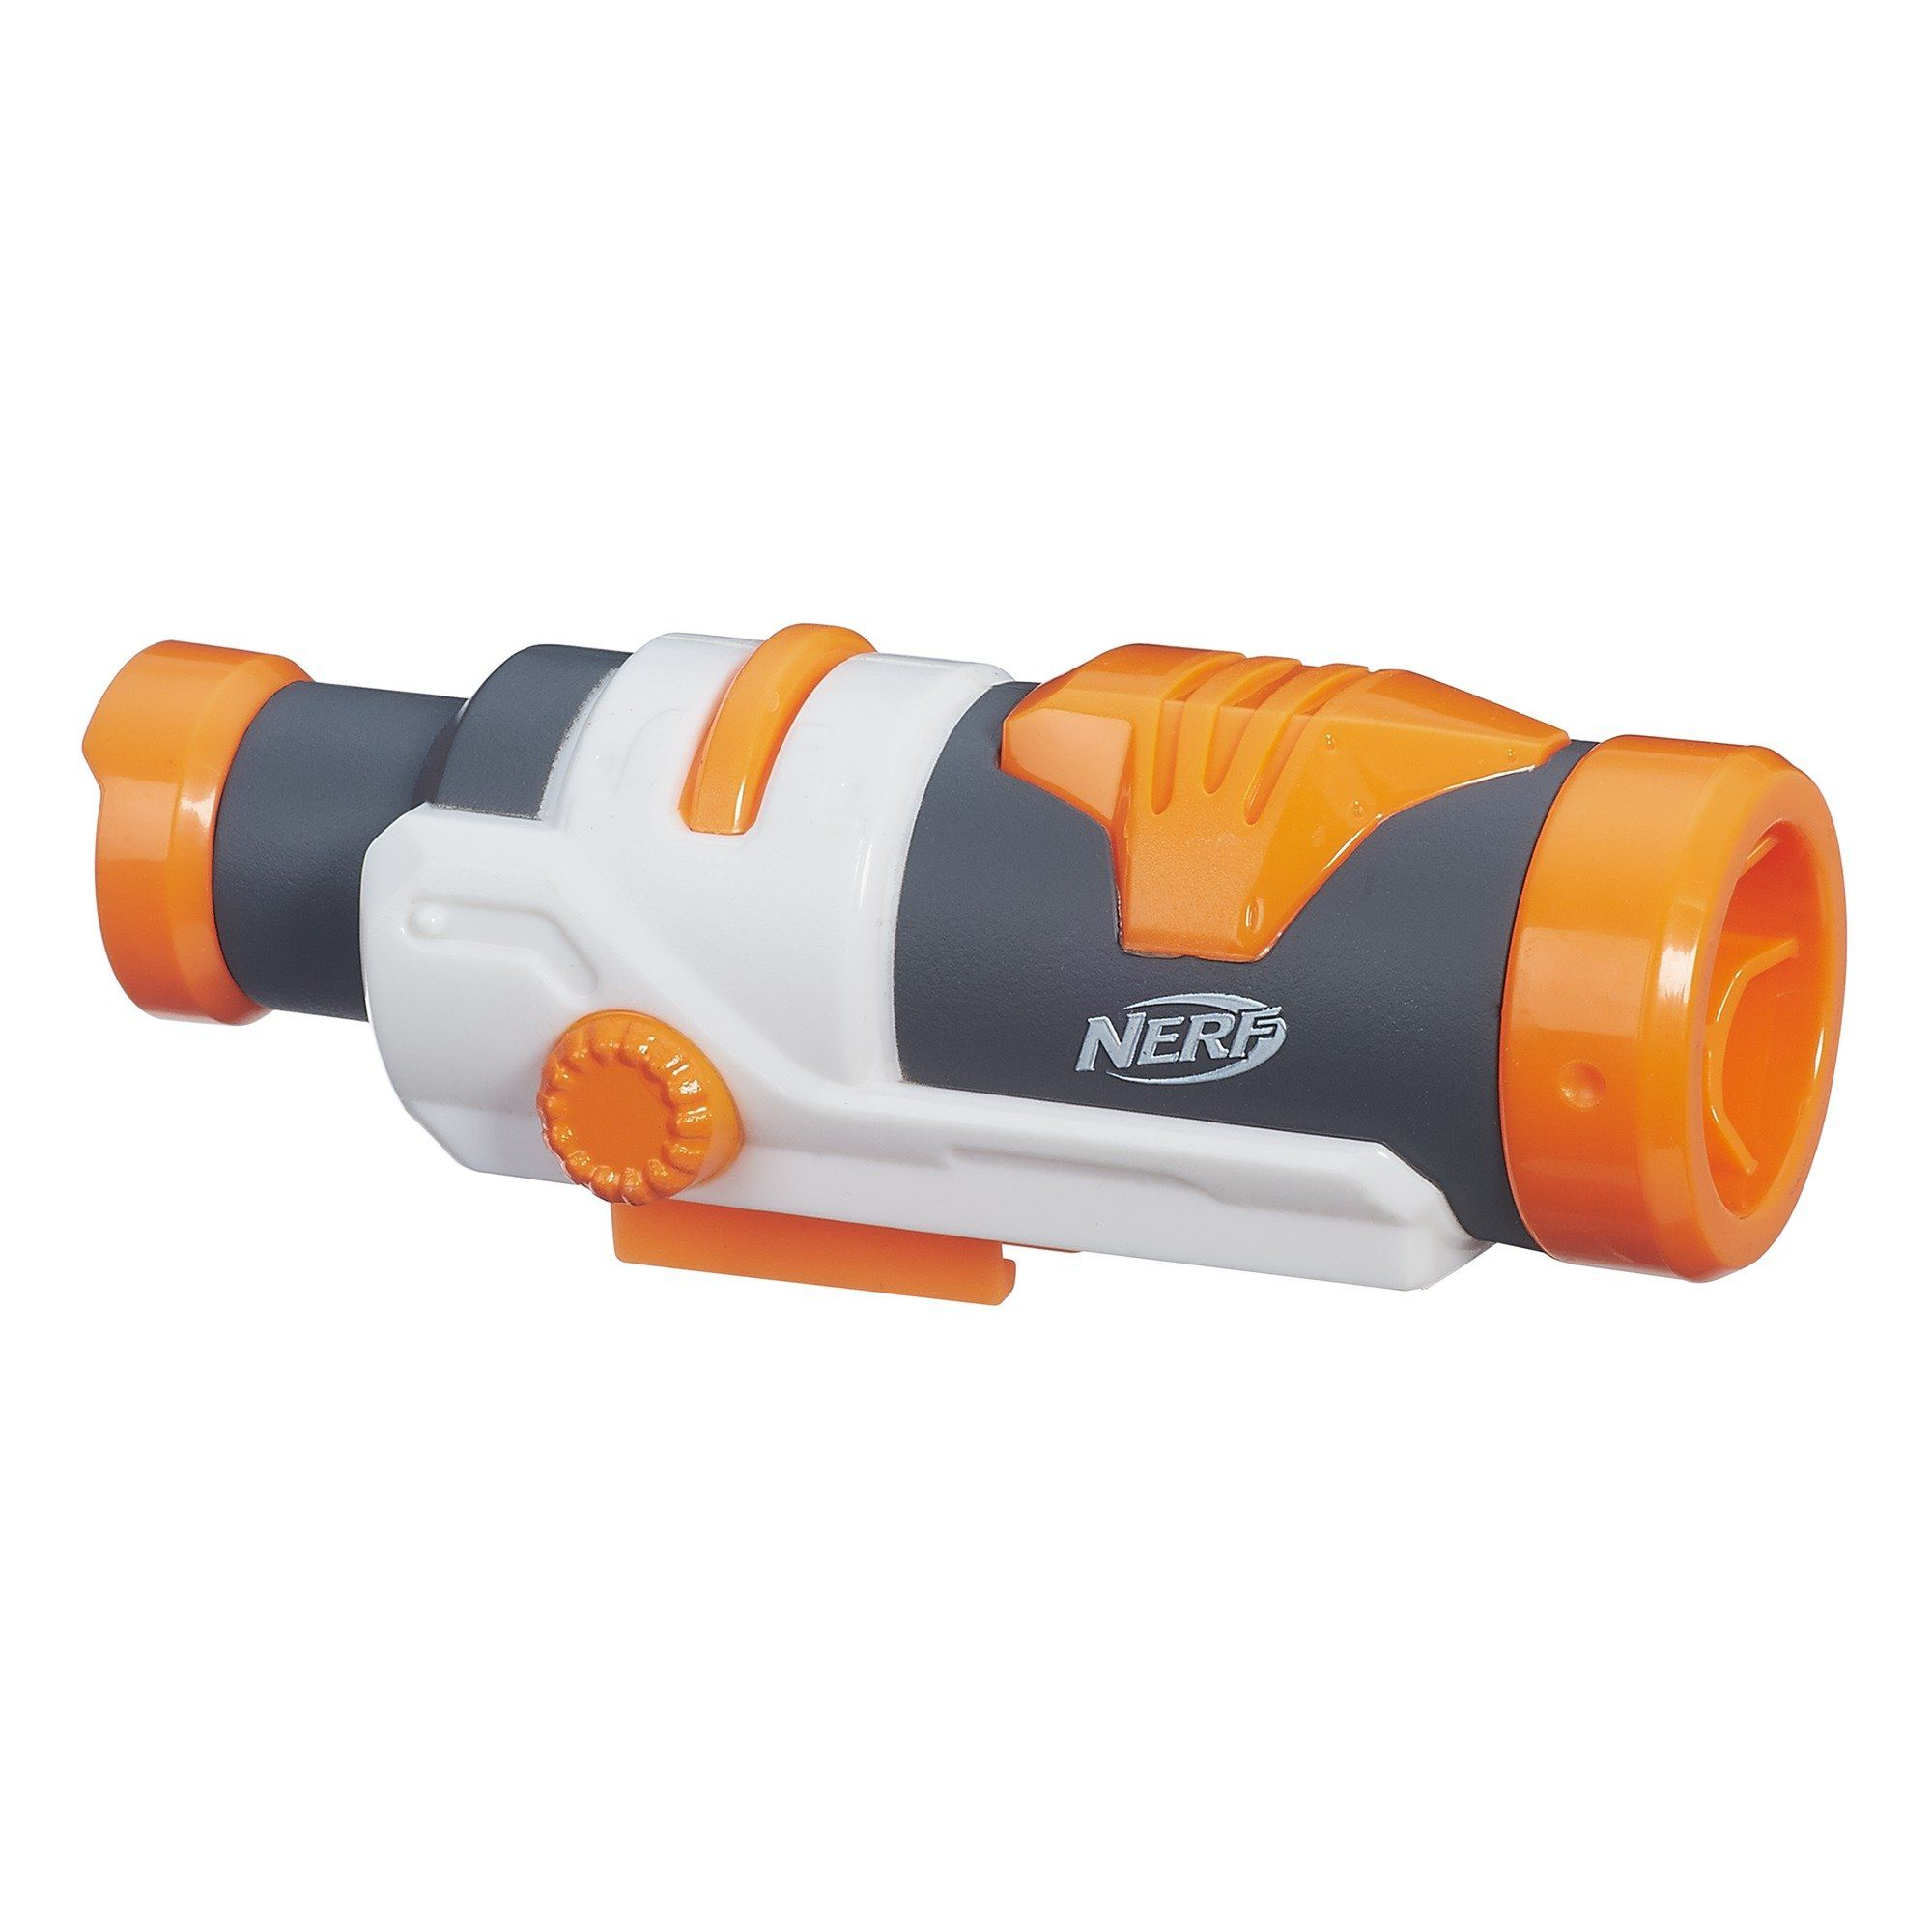 Nerf Modulus Targeting Scope. Customize your Nerf Modulus blaster (sold  separately). Part of the Nerf Modulus system. Targeting scope attaches to  tactical ...